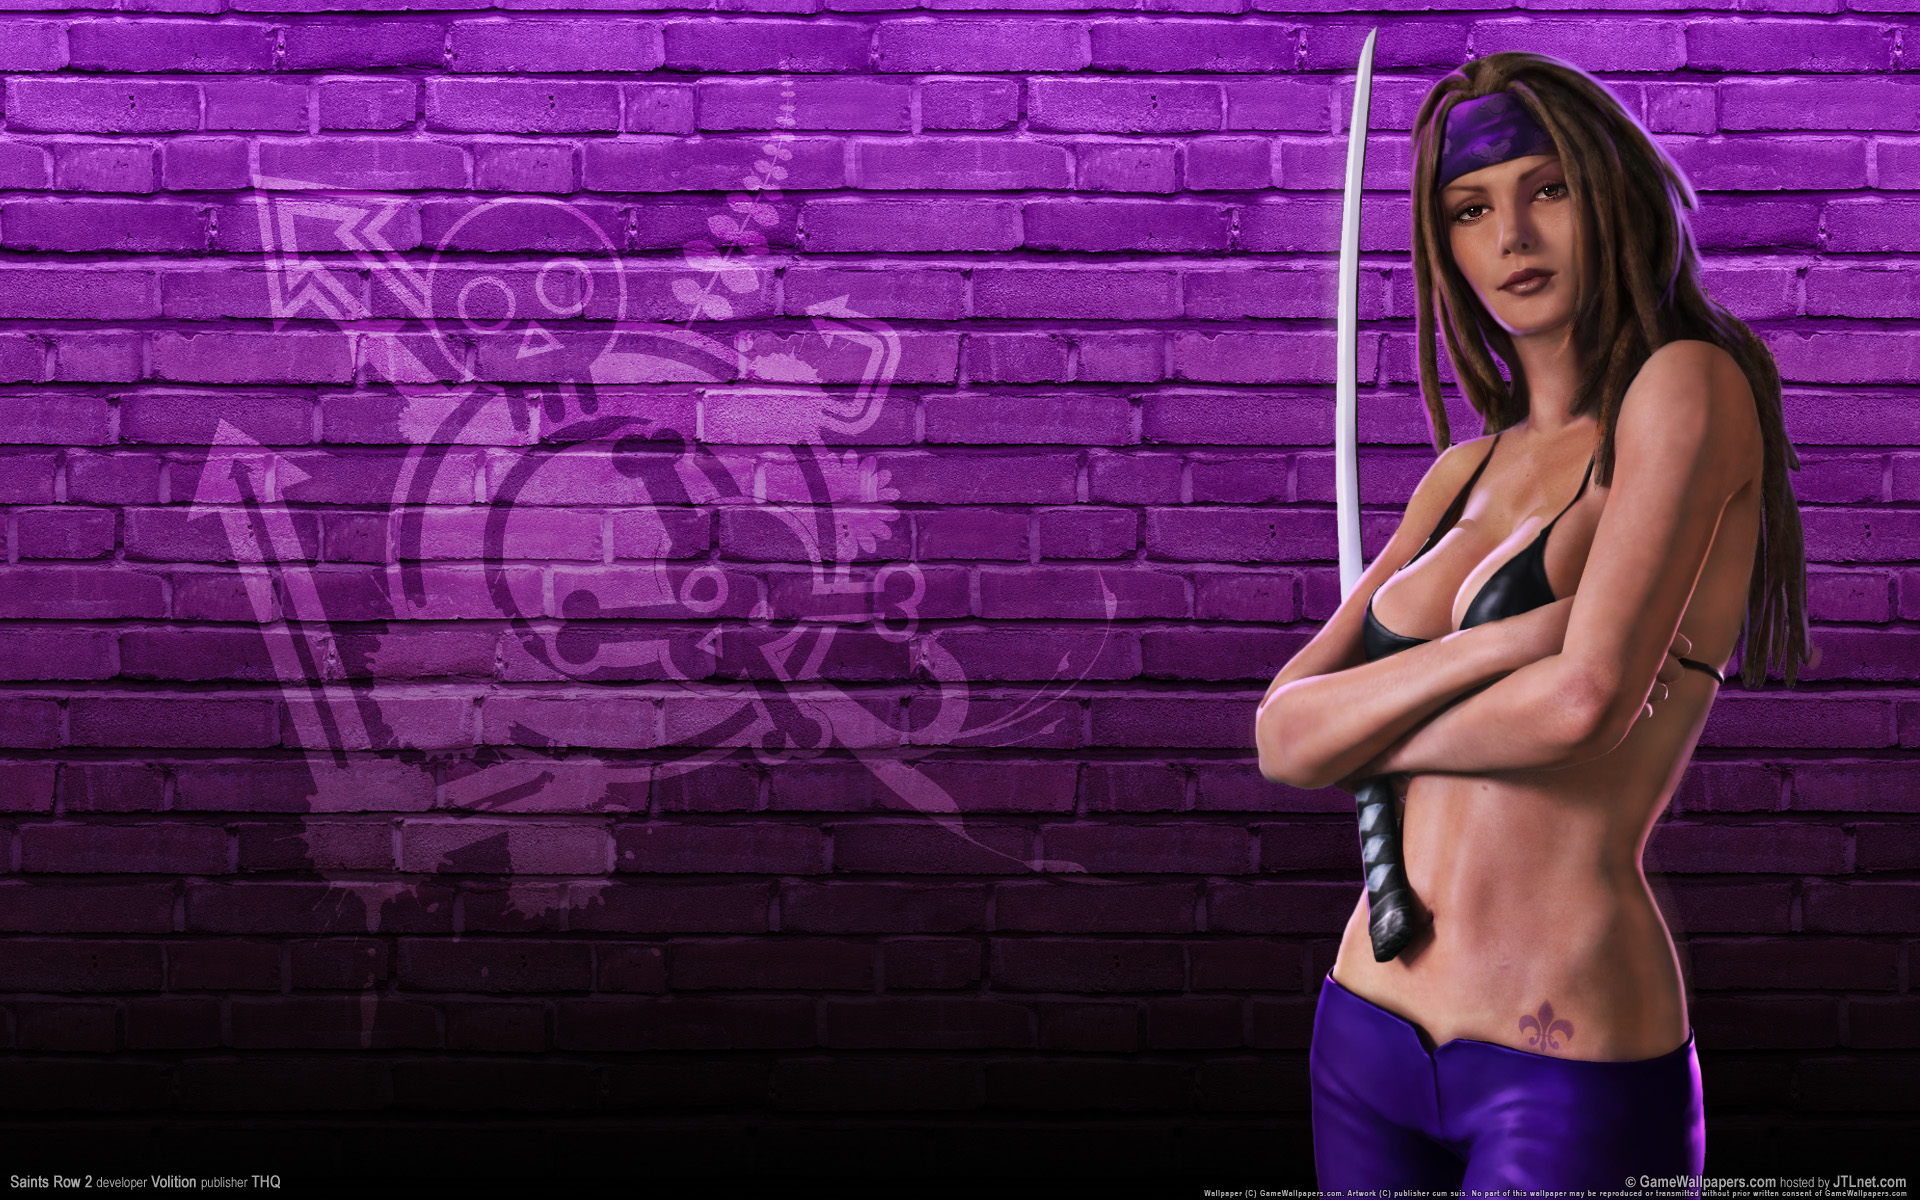 Saint row 2 pussy girl pic sex galleries